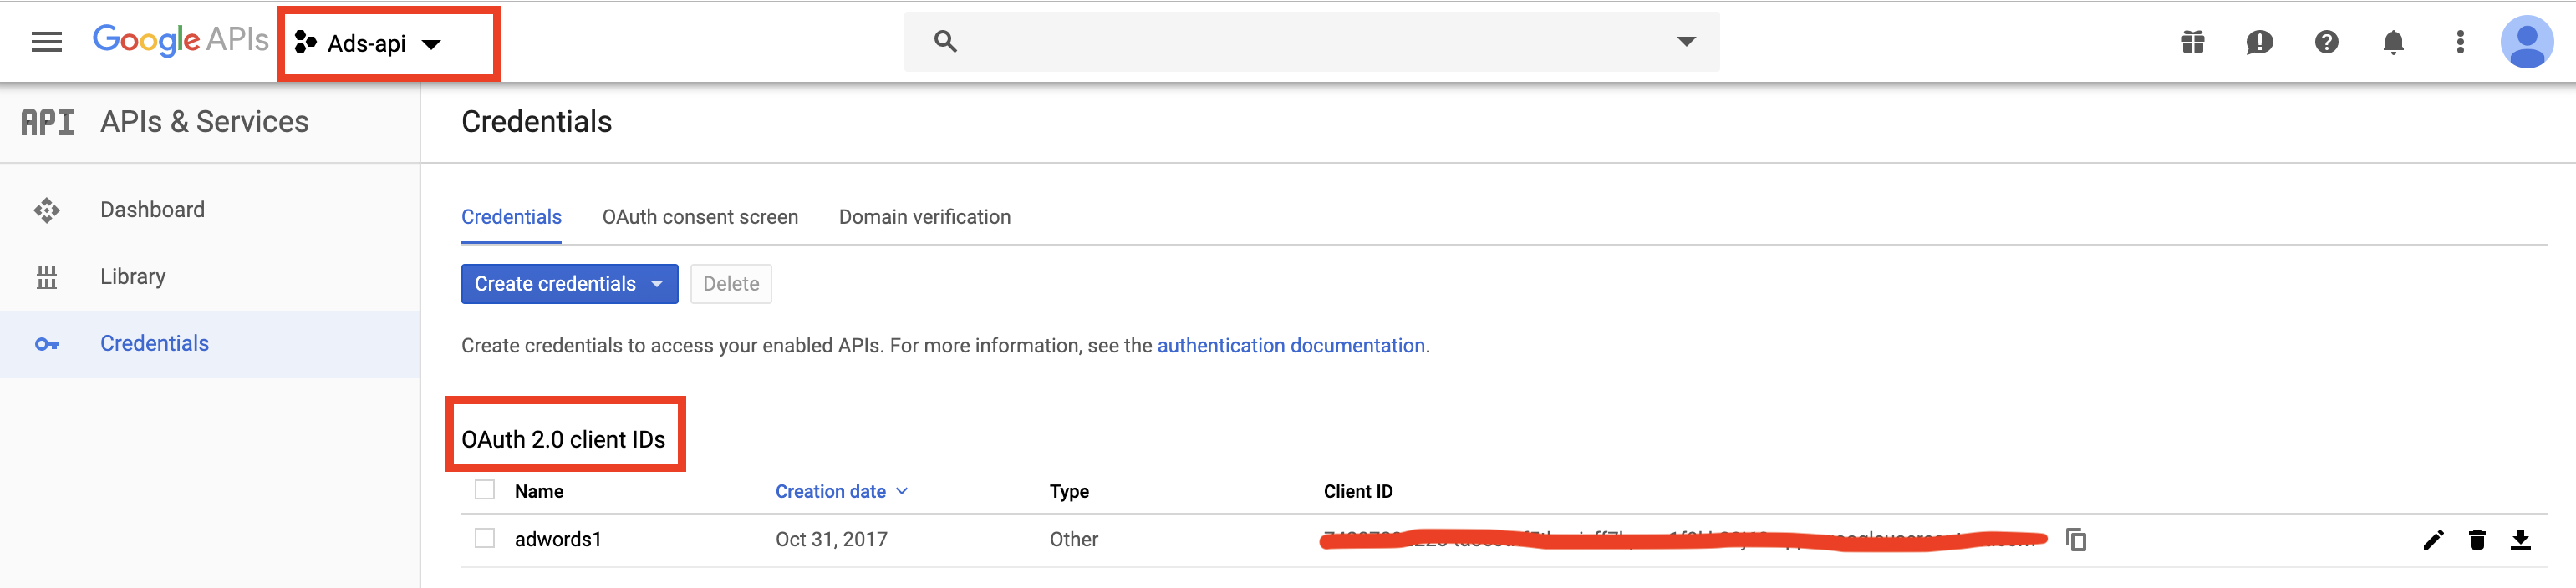 Google Ads reporting Python — Step by Step Guide - Towards